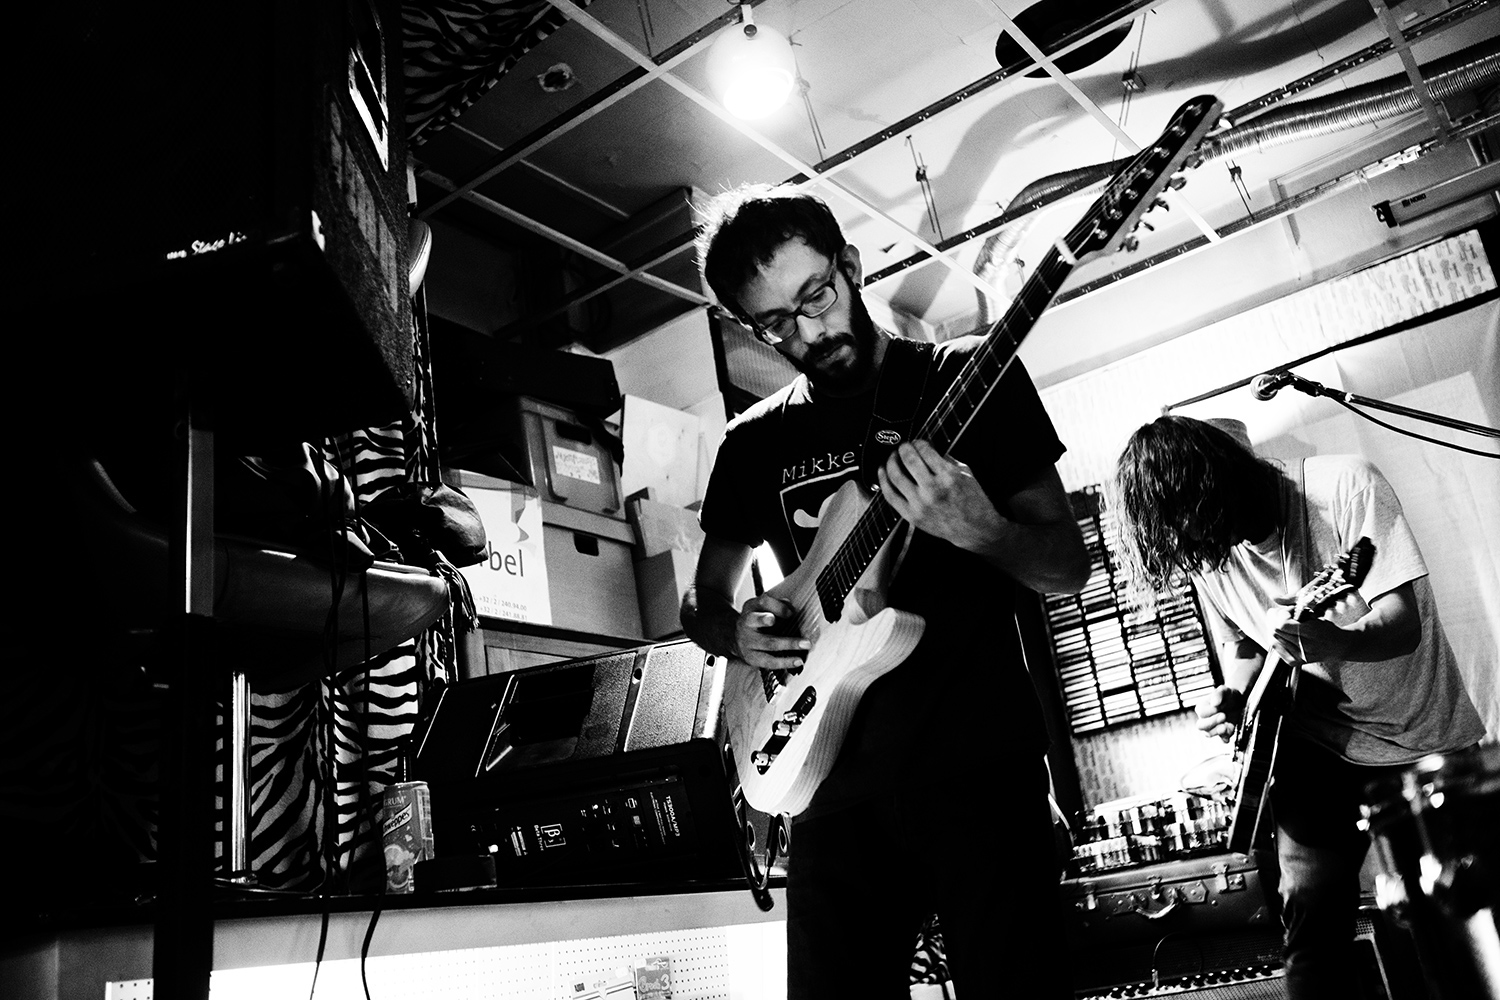 Phoenician Drive by Laurent Orseau - Balades Sonores - Brussels, Belgium #10